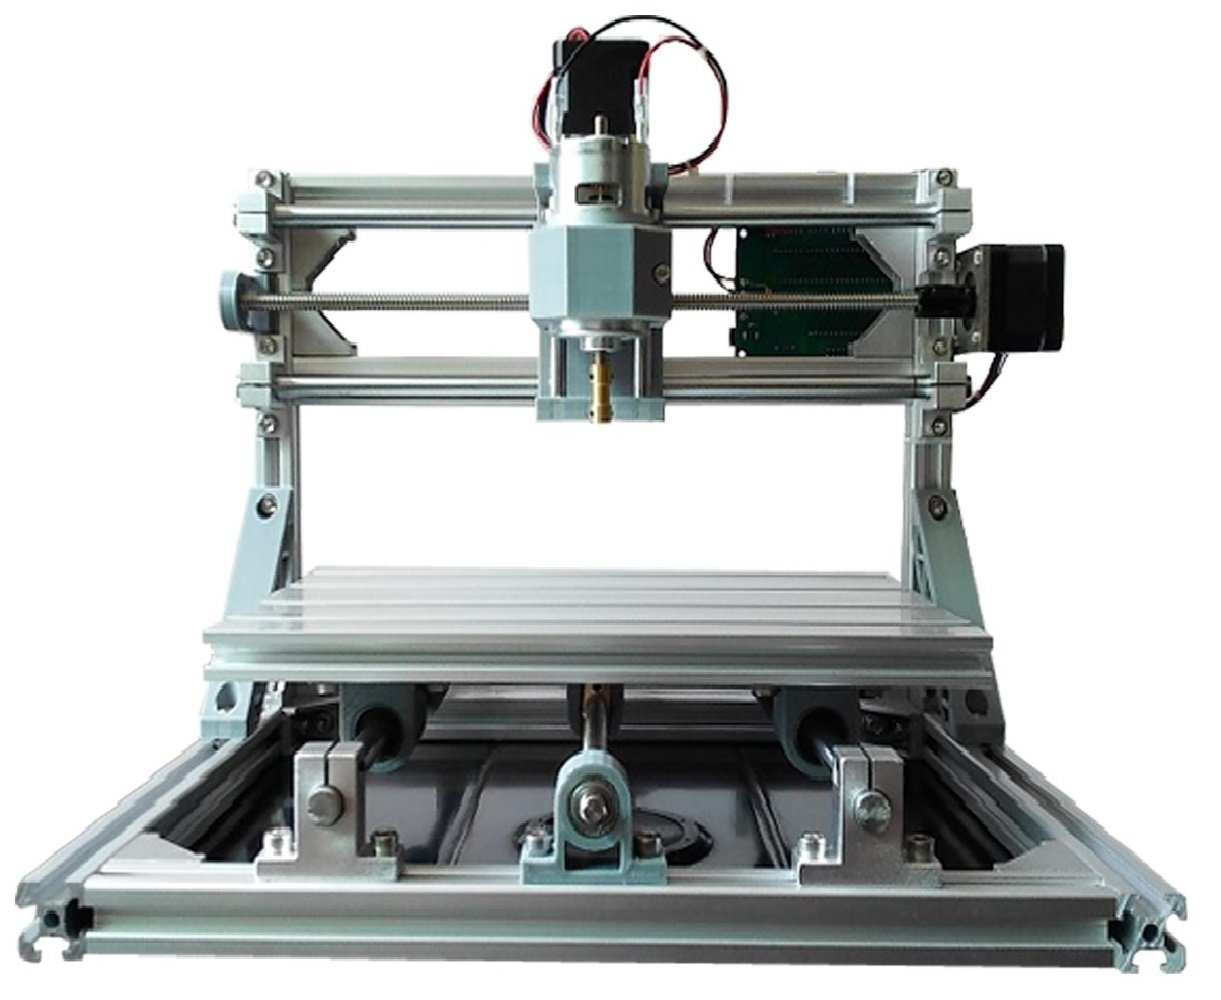 2 In 1 Diy Cnc 2418 3 Axis Router Kit 5500mw Laser Engraver Pcb Cutting Machine Printed Circuit Board Suppliers Wood Cutter Milling Engraving